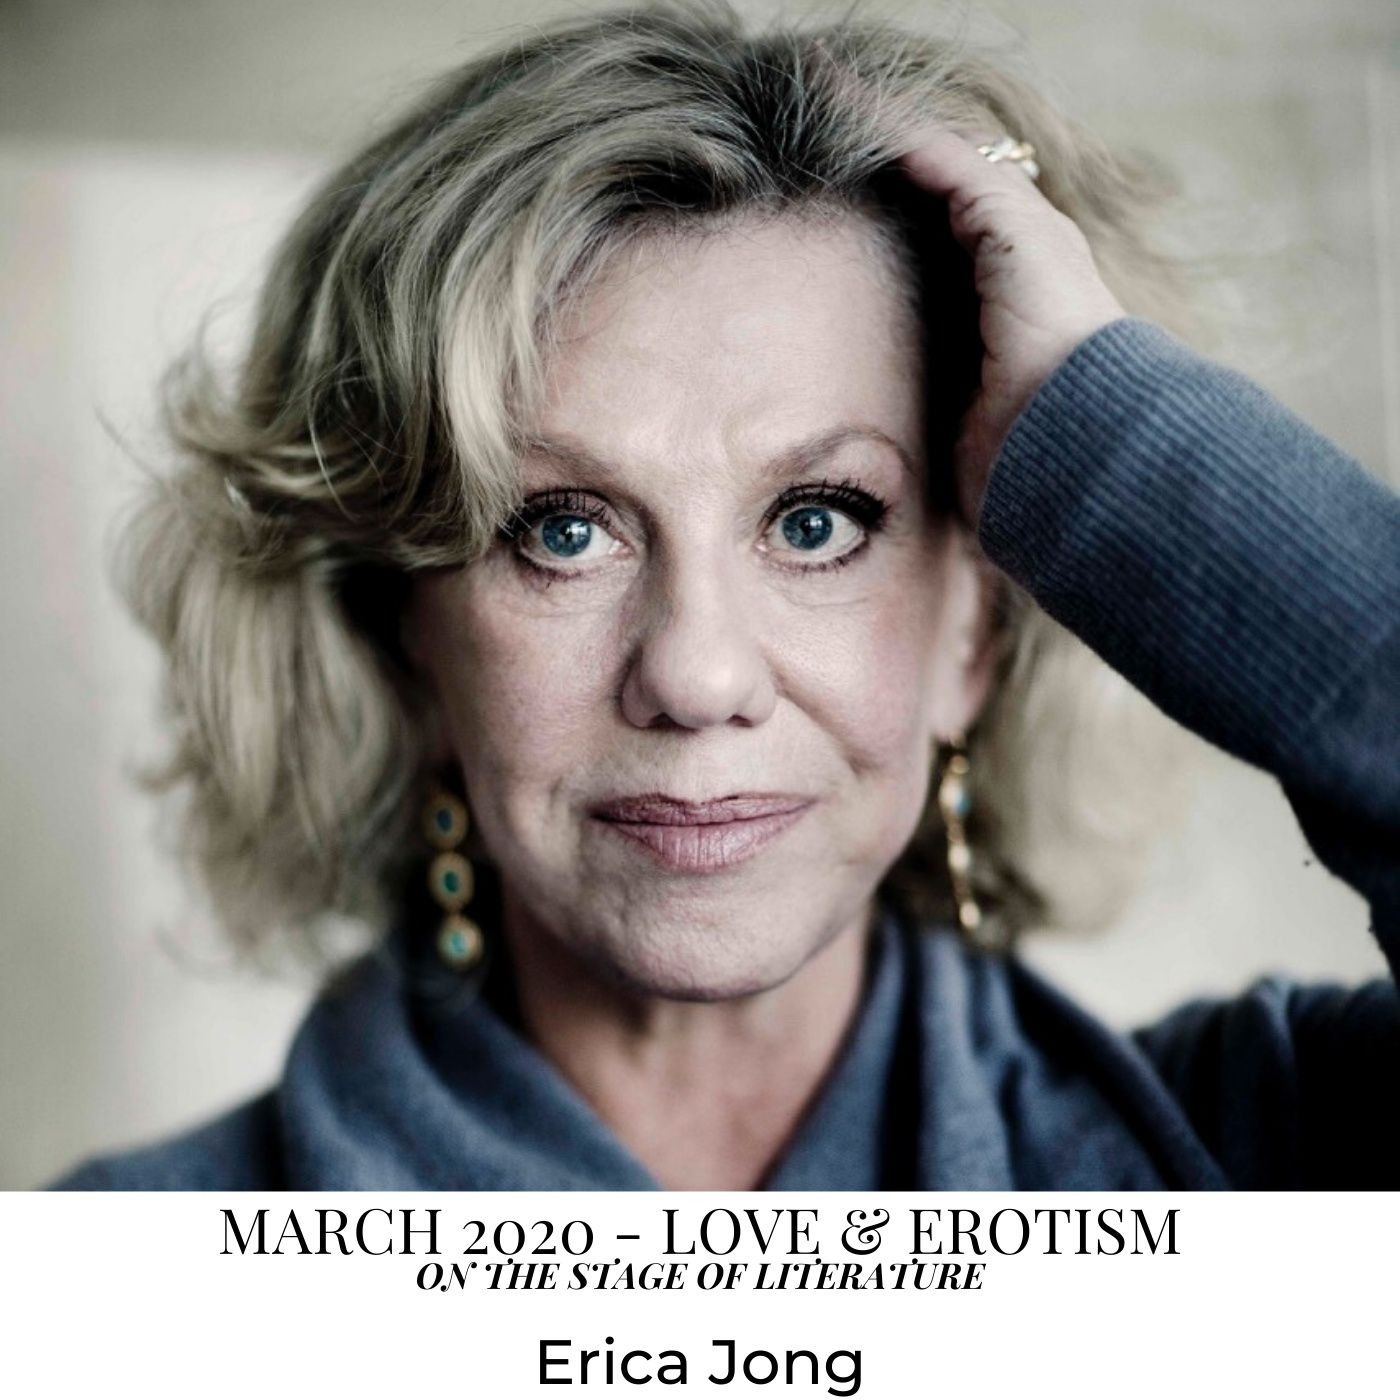 Creative Interview with Erica Jong. Love & Erotism - On the Stage of Literature - March 2020